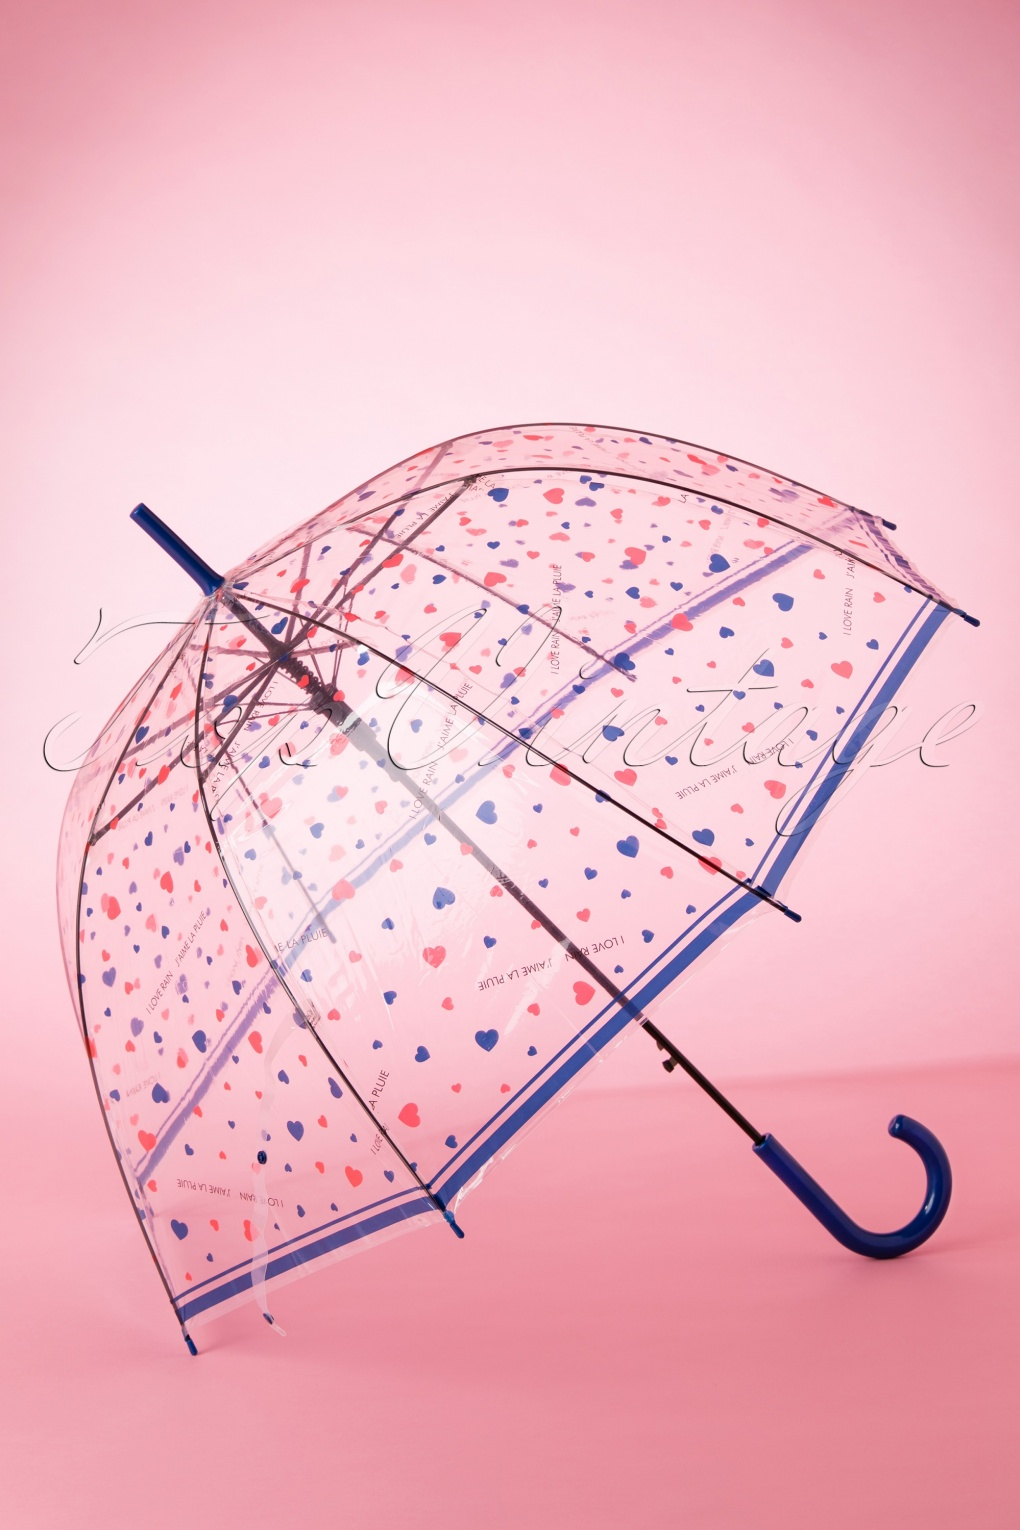 Vintage Style Parasols and Umbrellas 60s I Love Rain Transparent Dome Umbrella in Blue £15.59 AT vintagedancer.com